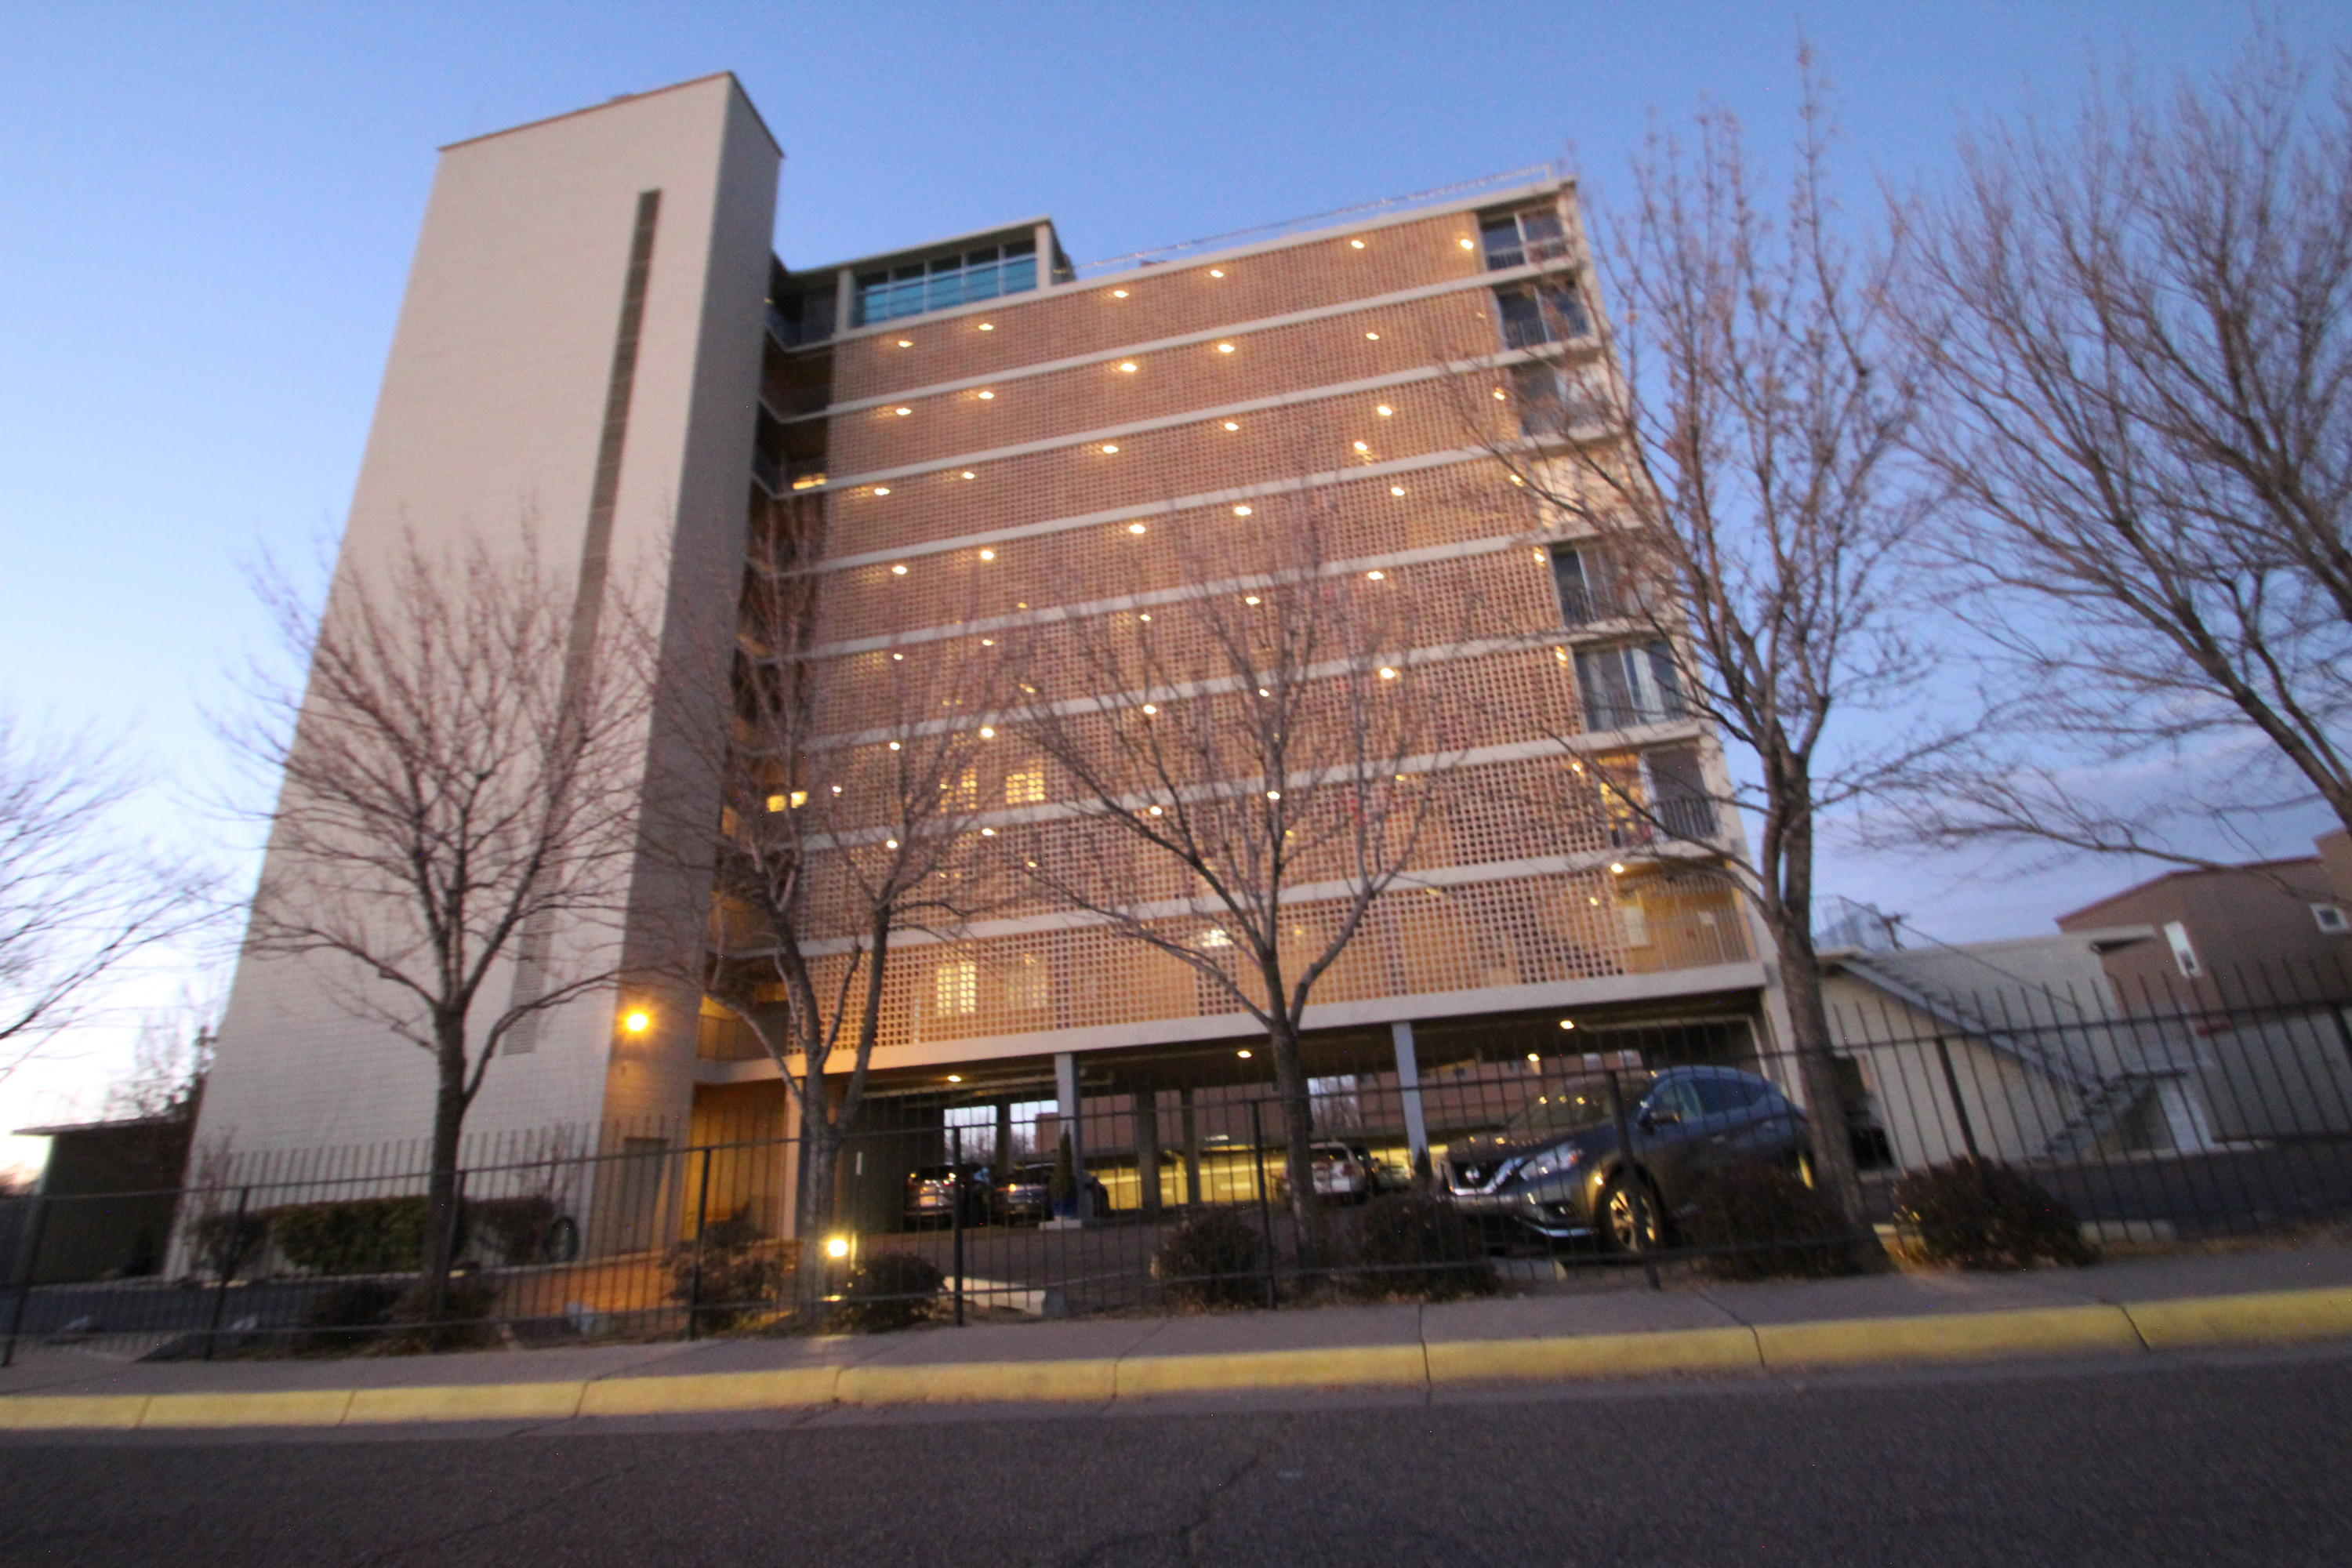 Incredible, updated knock your socks off  West Downtown Gated Condo.  Tasty kitchen with Stainless steel, Corian Counters and Custom Cabinets. Recent Furnace, Large Closets, Community Pool, large third bedroom/ office or Suite Covered indoor Room Balcony . Security entry with Covered parking . Near parks  old town dining, Two deeded parking spaces, Doorman and Elevator .